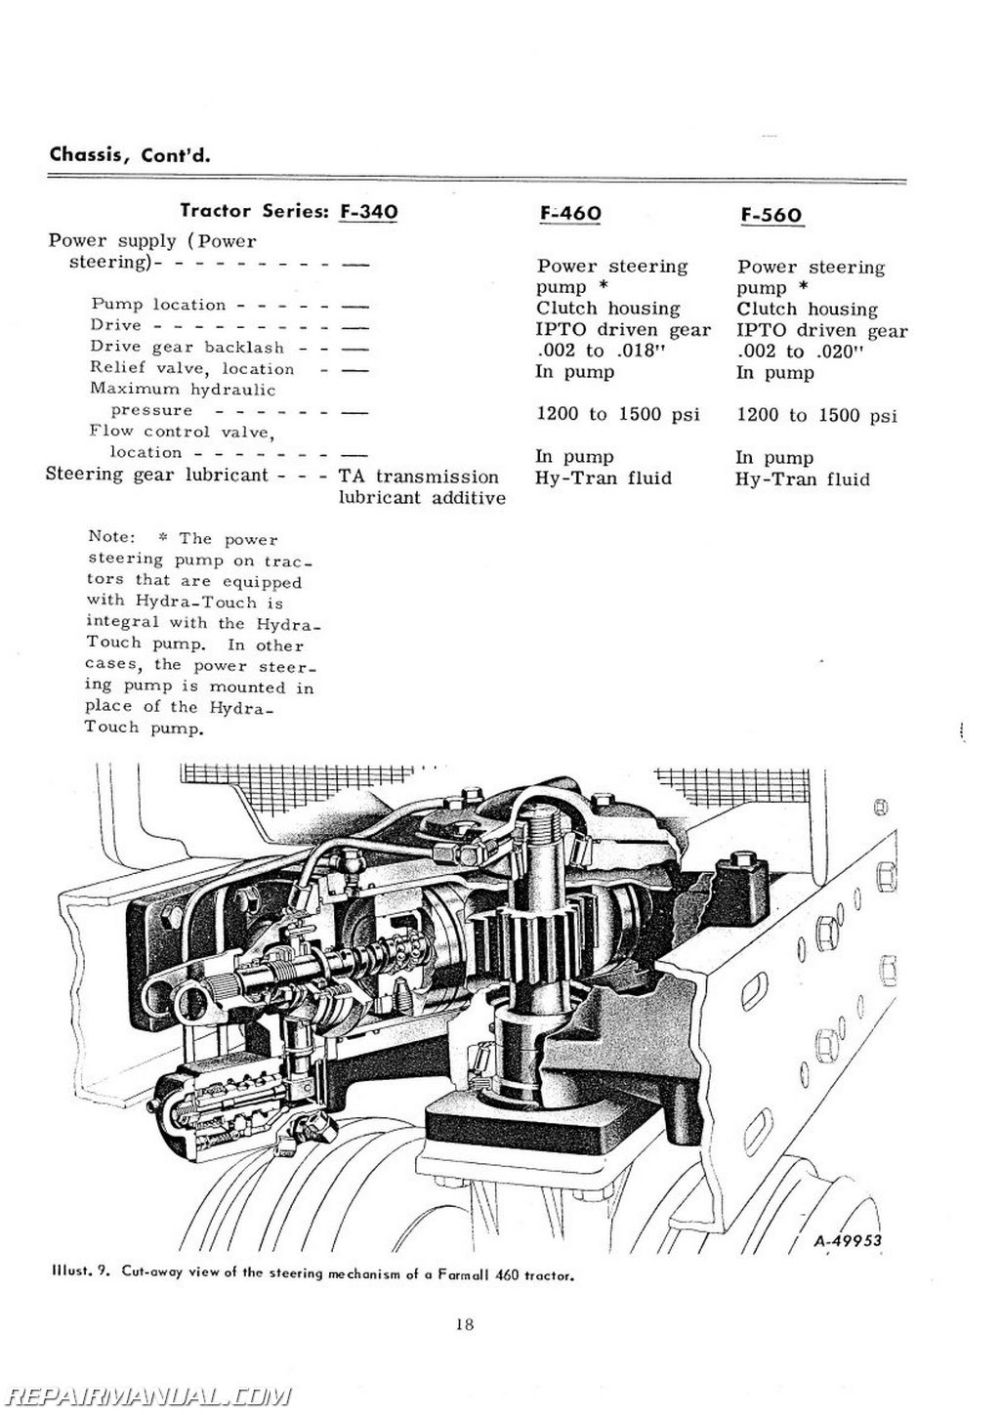 medium resolution of farmall 460 transmission diagram schematics wiring diagrams u2022 rh parntesis co farmall 460 diesel farmall 460